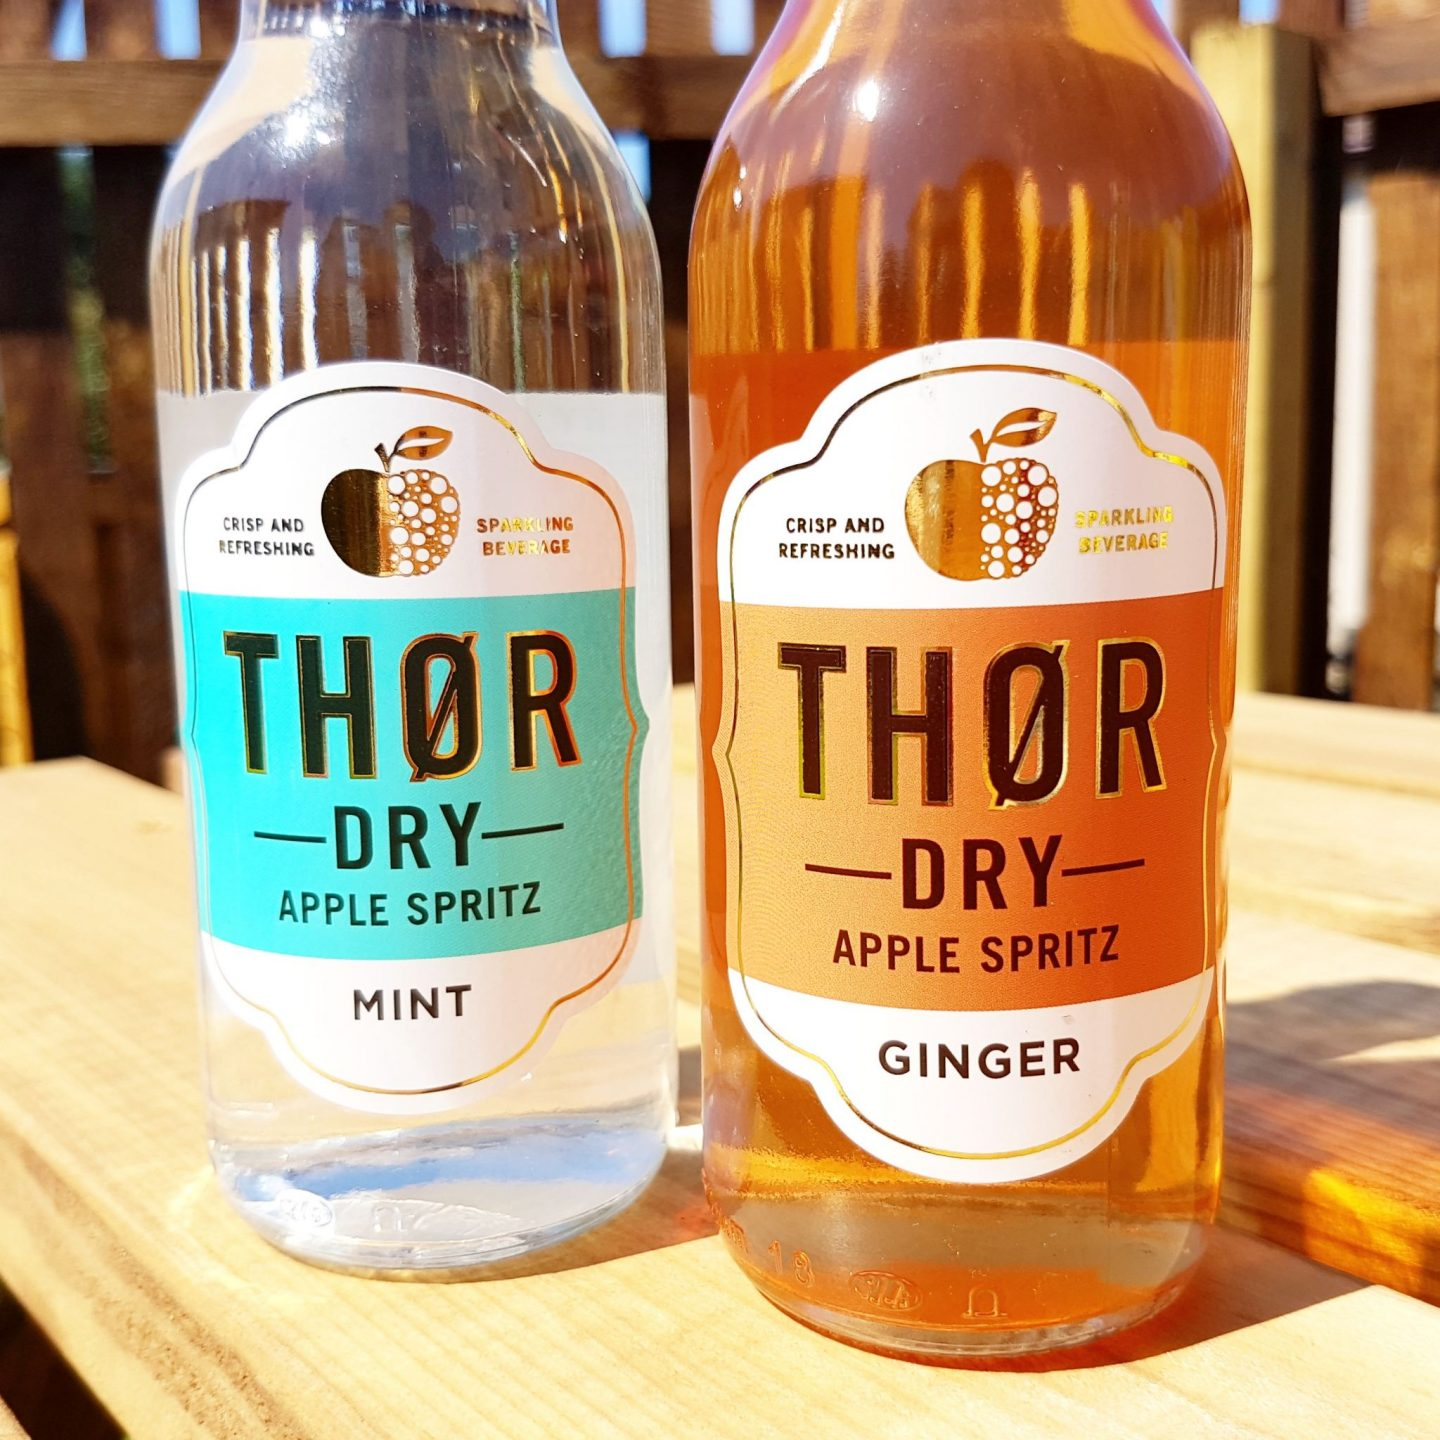 Thor Dry Apple Spritz